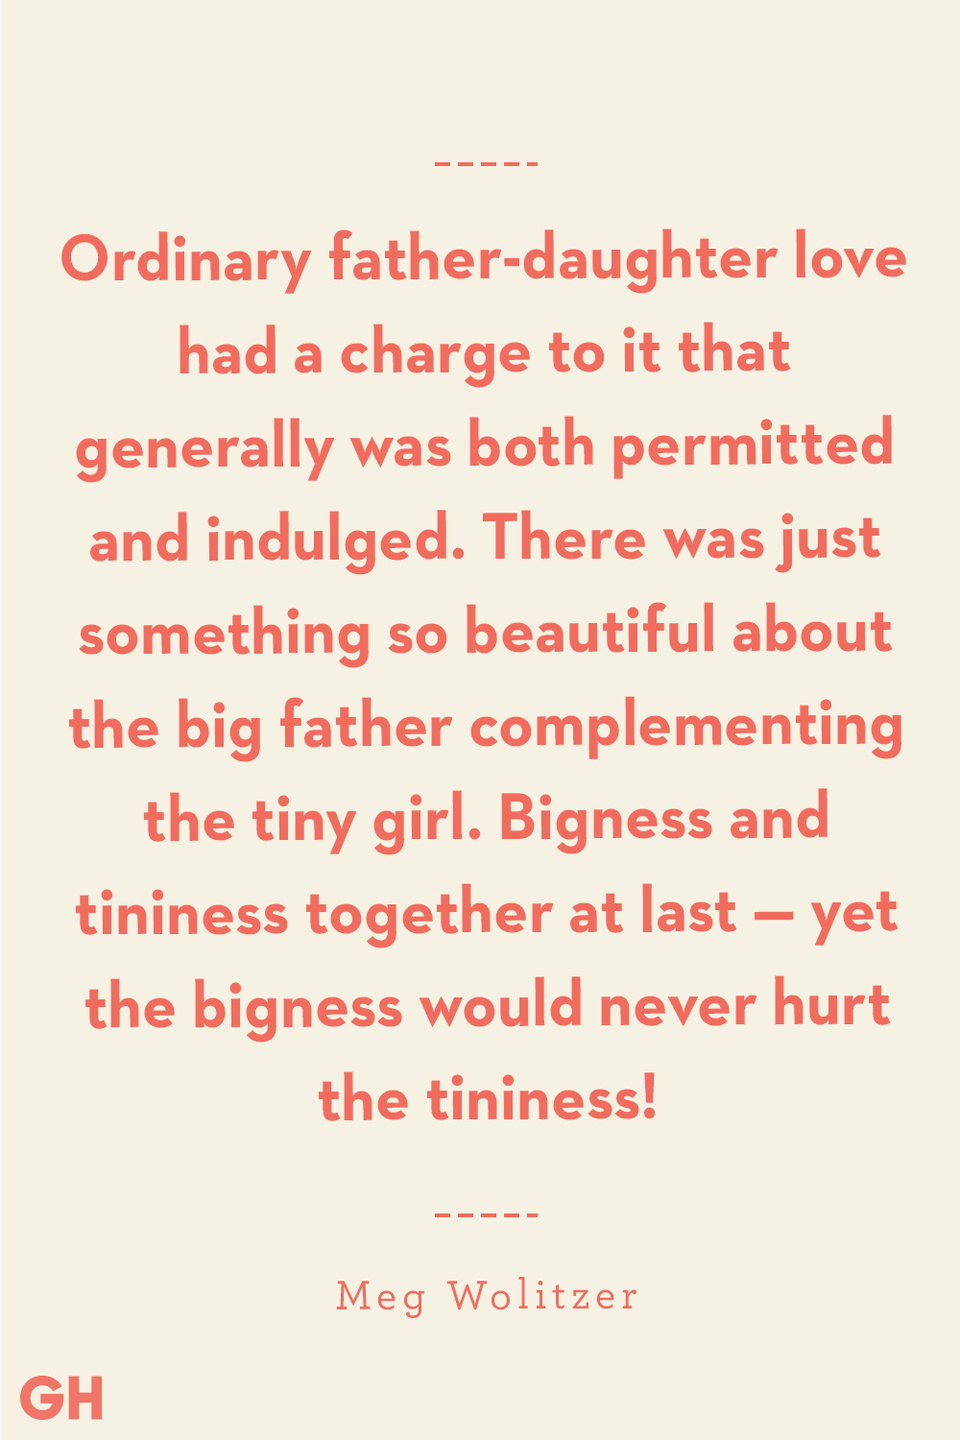 <p>Ordinary father-daughter love had a charge to it that generally was both permitted and indulged. There was just something so beautiful about the big father complementing the tiny girl. Bigness and tininess together at last — yet the bigness would never hurt the tininess!</p>